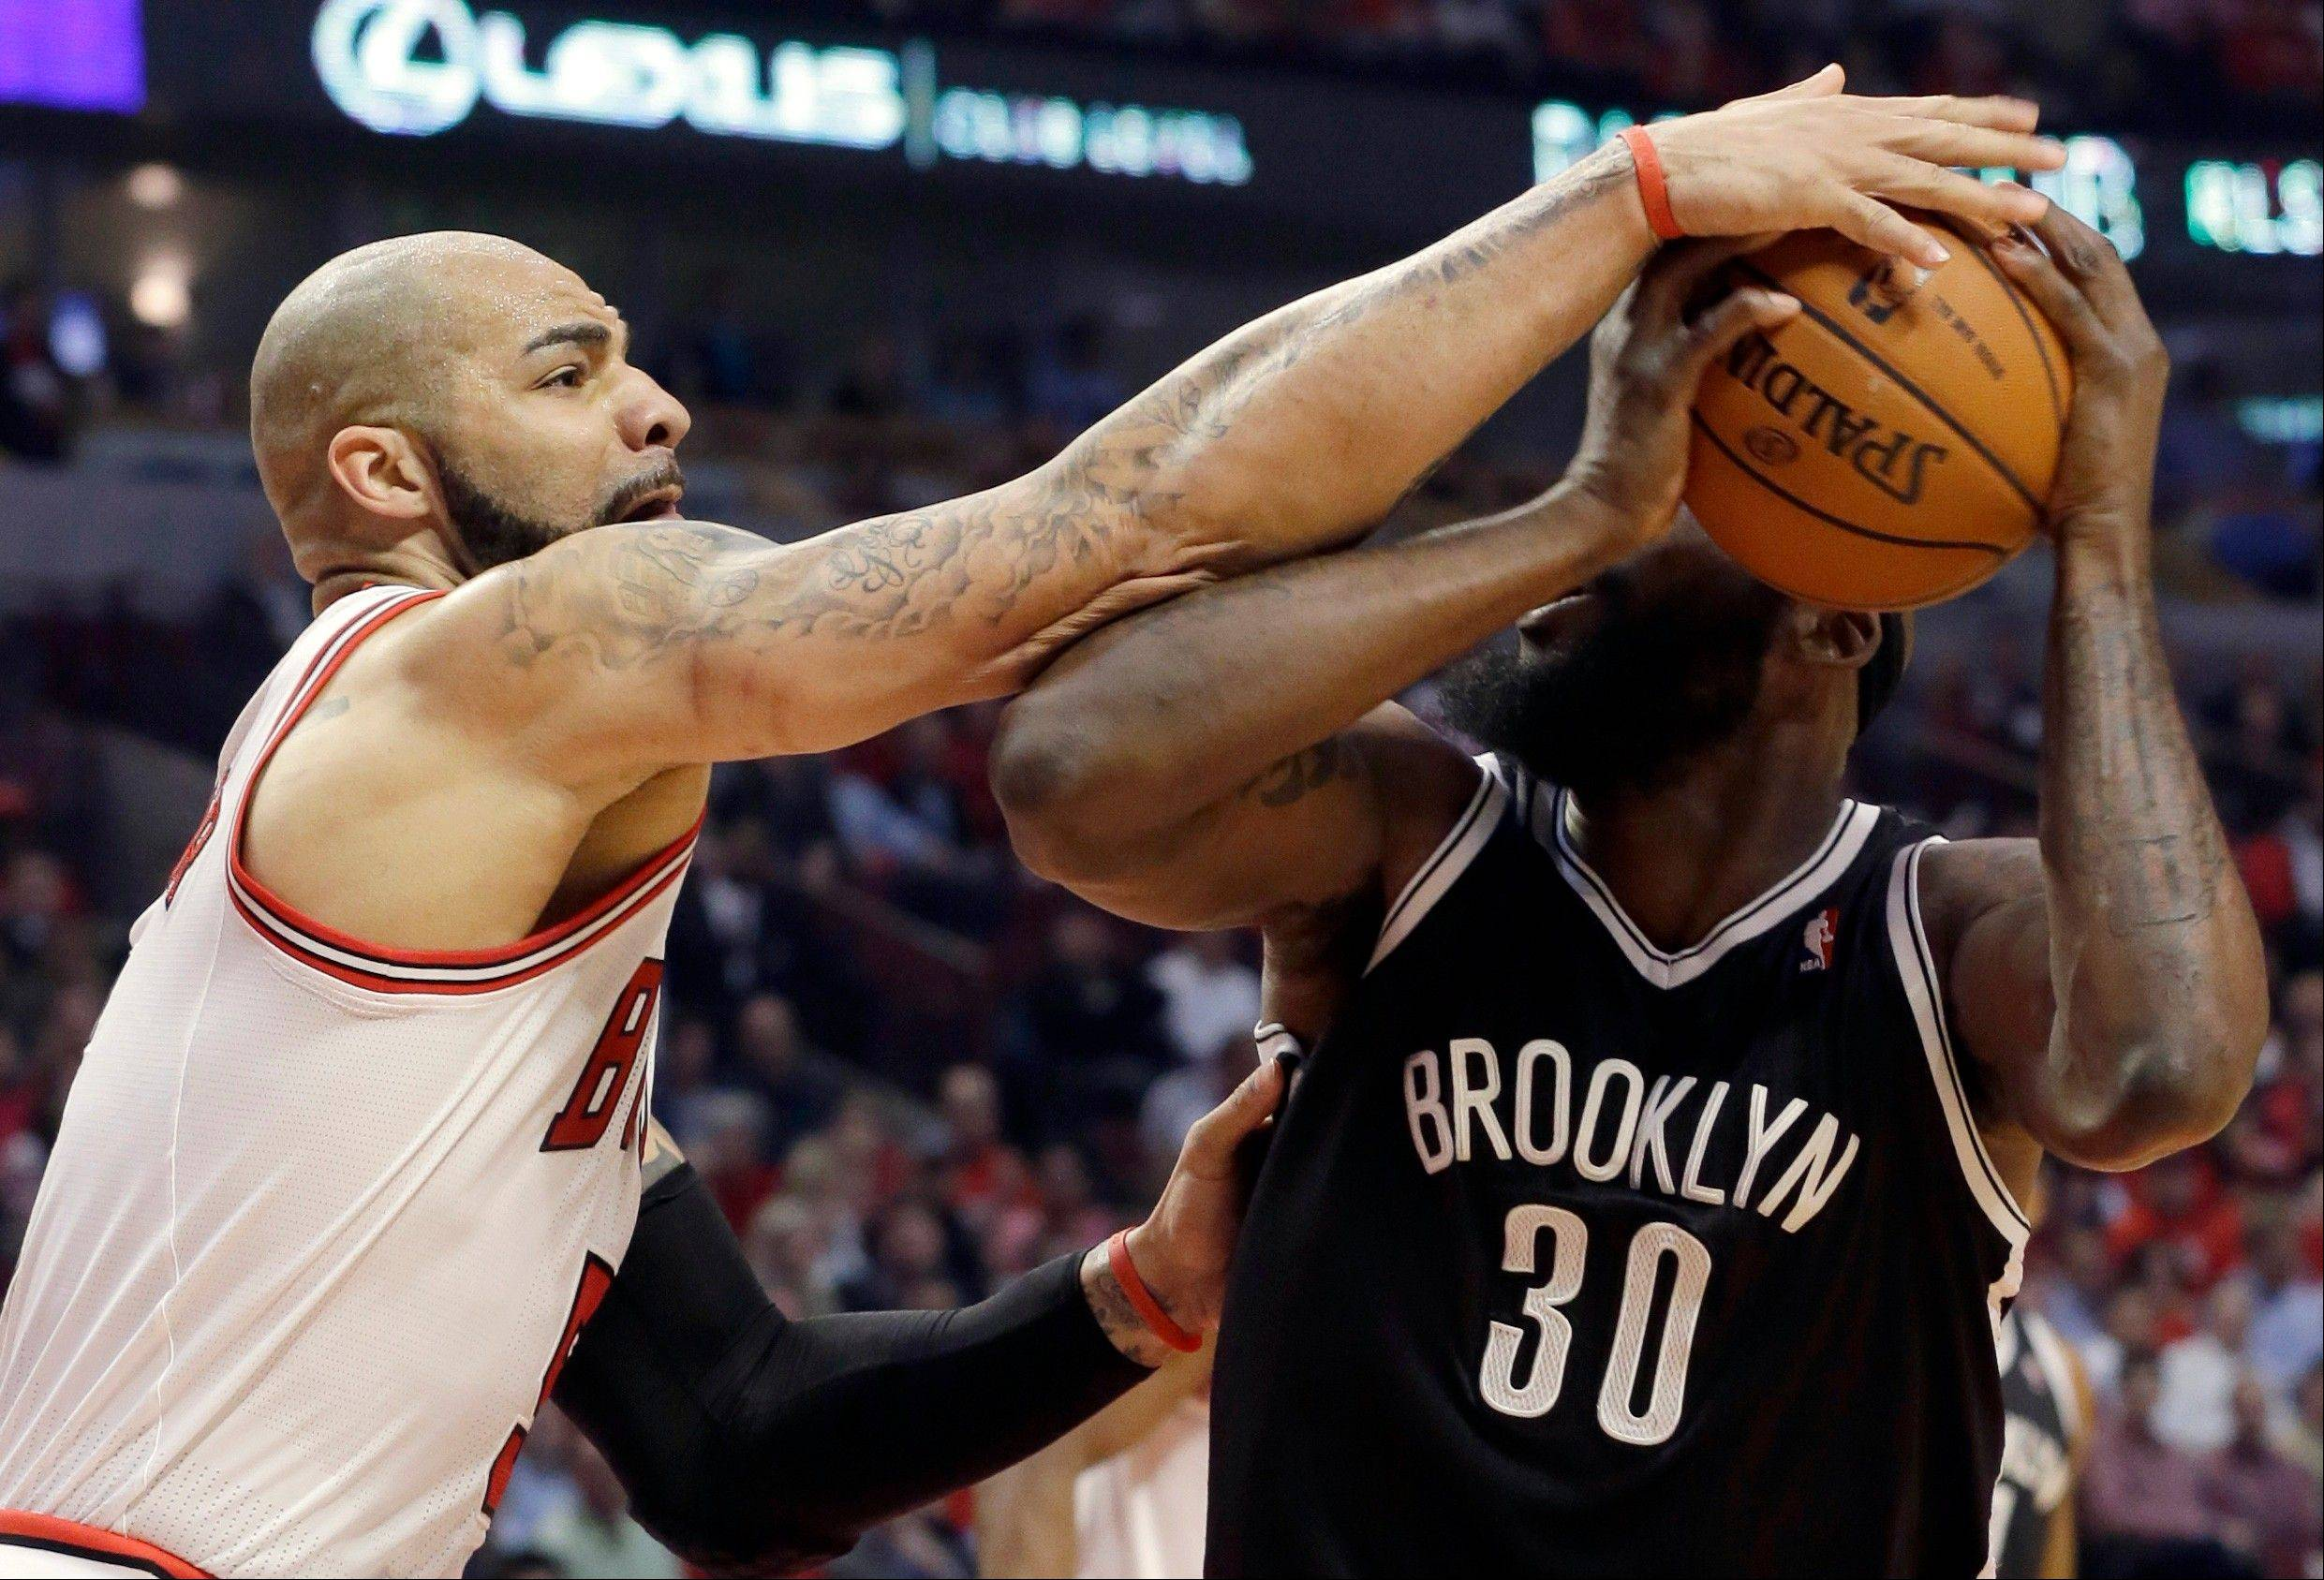 Chicago Bulls forward Carlos Boozer, left, defends against Brooklyn Nets forward Reggie Evans during the first half in Game 6 of their first-round NBA basketball playoff series in Chicago, Thursday, May 2, 2013.